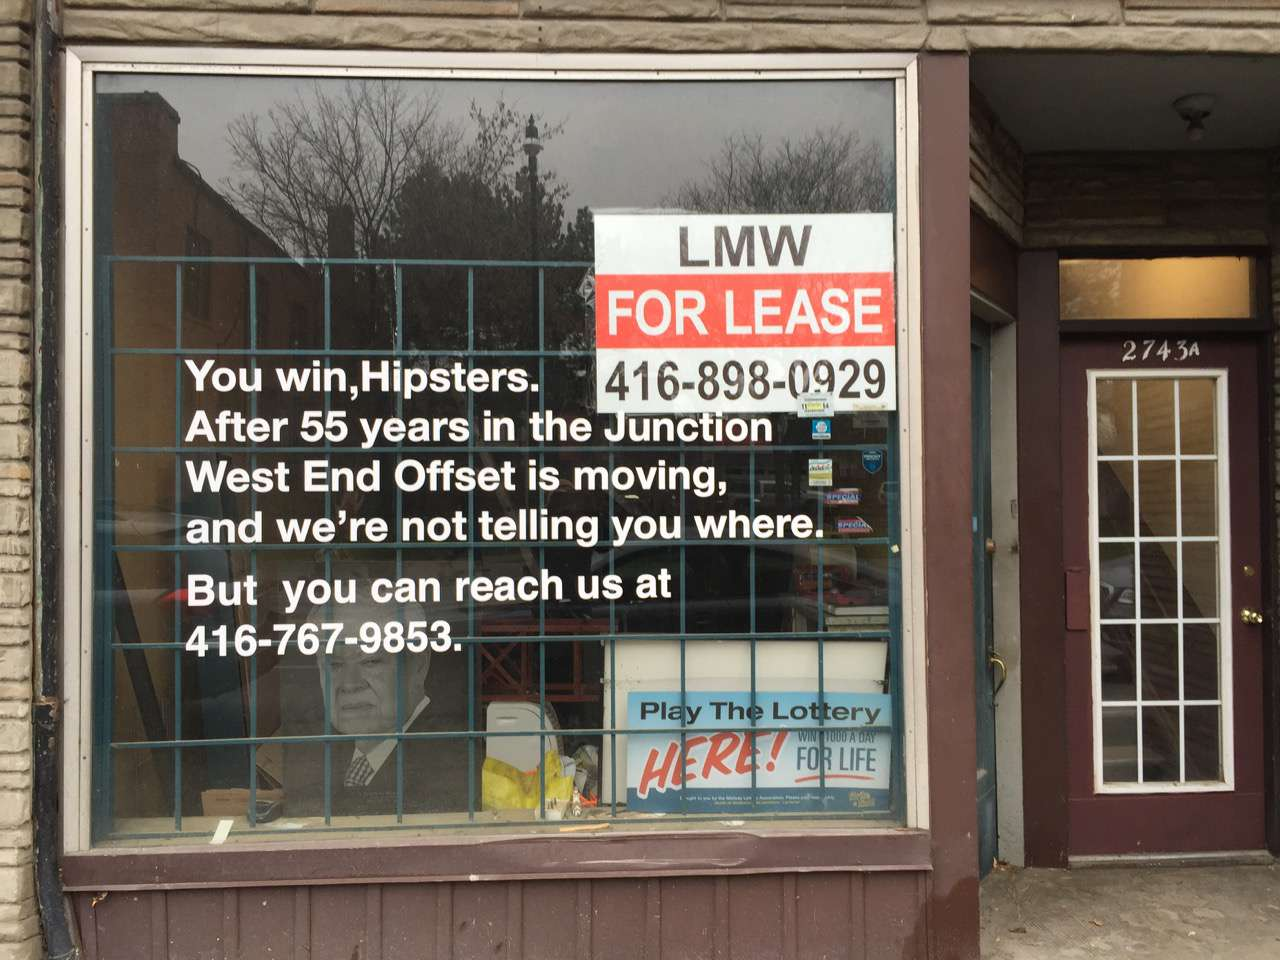 sign in store window